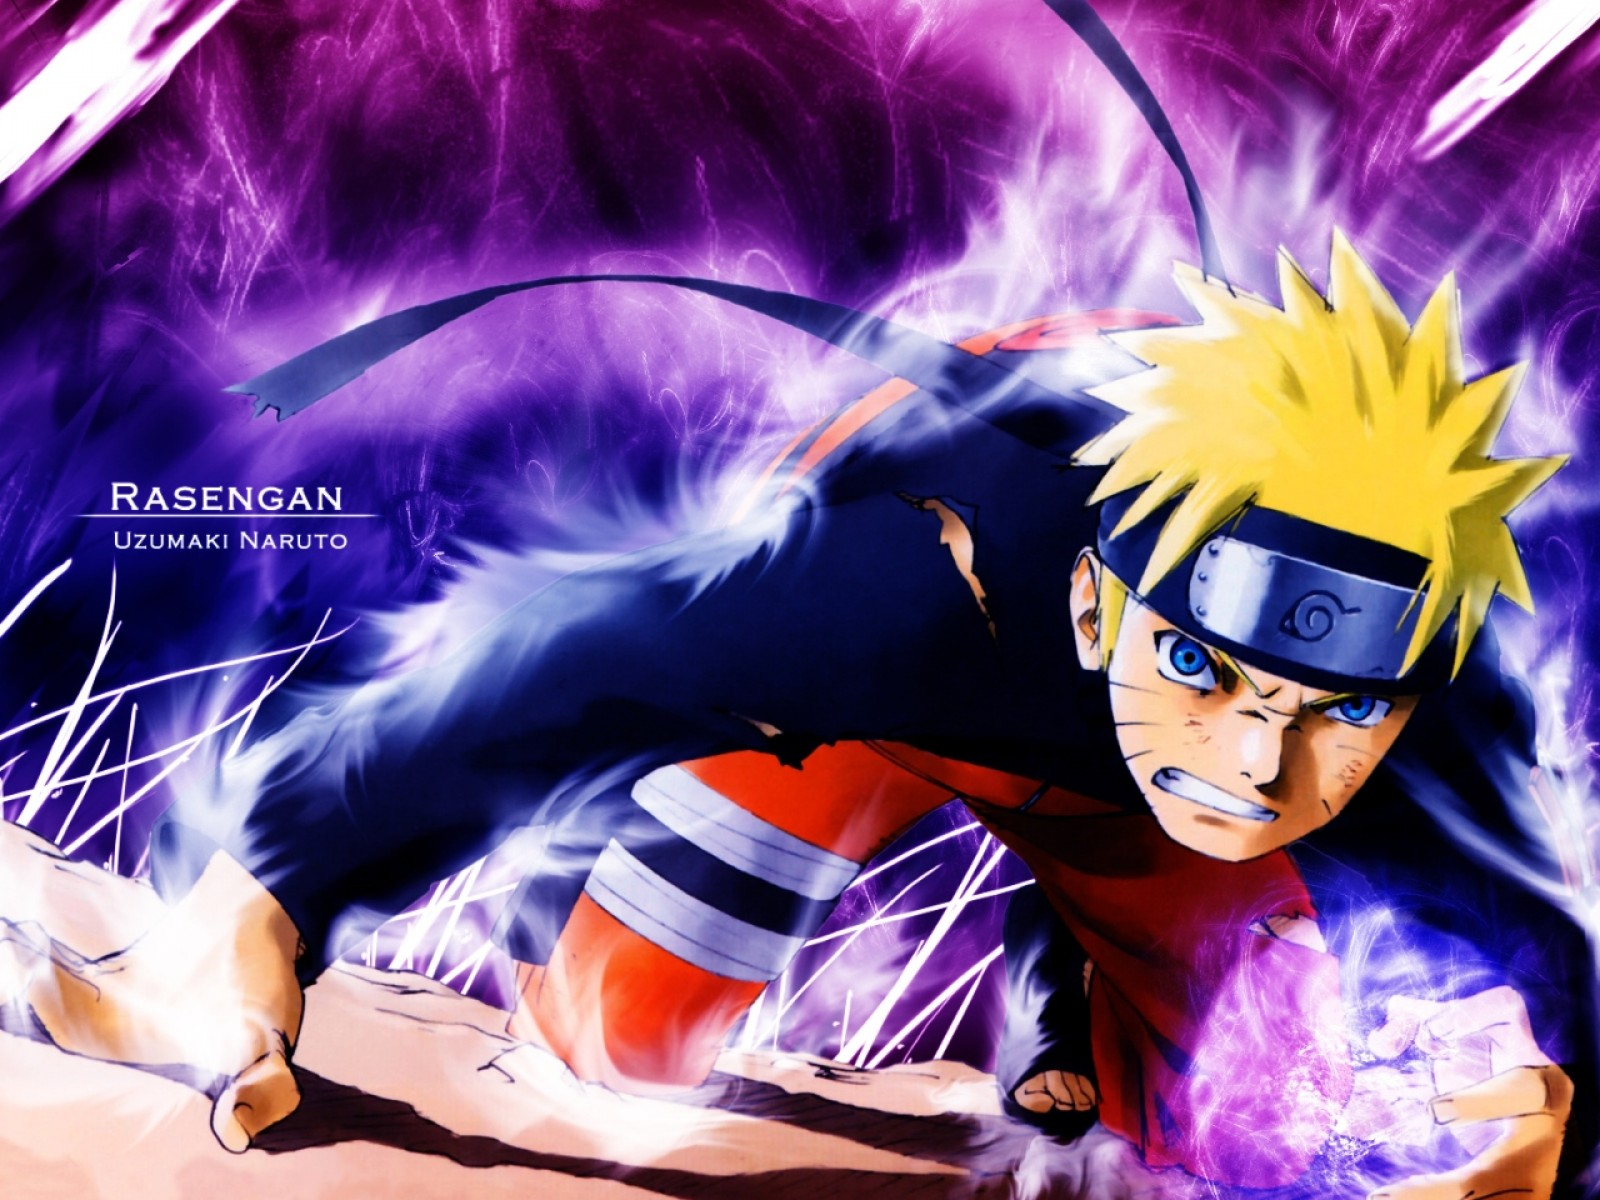 Naruto Shippuden   Rasengan HD Wallpaper Animation Wallpapers 1600x1200